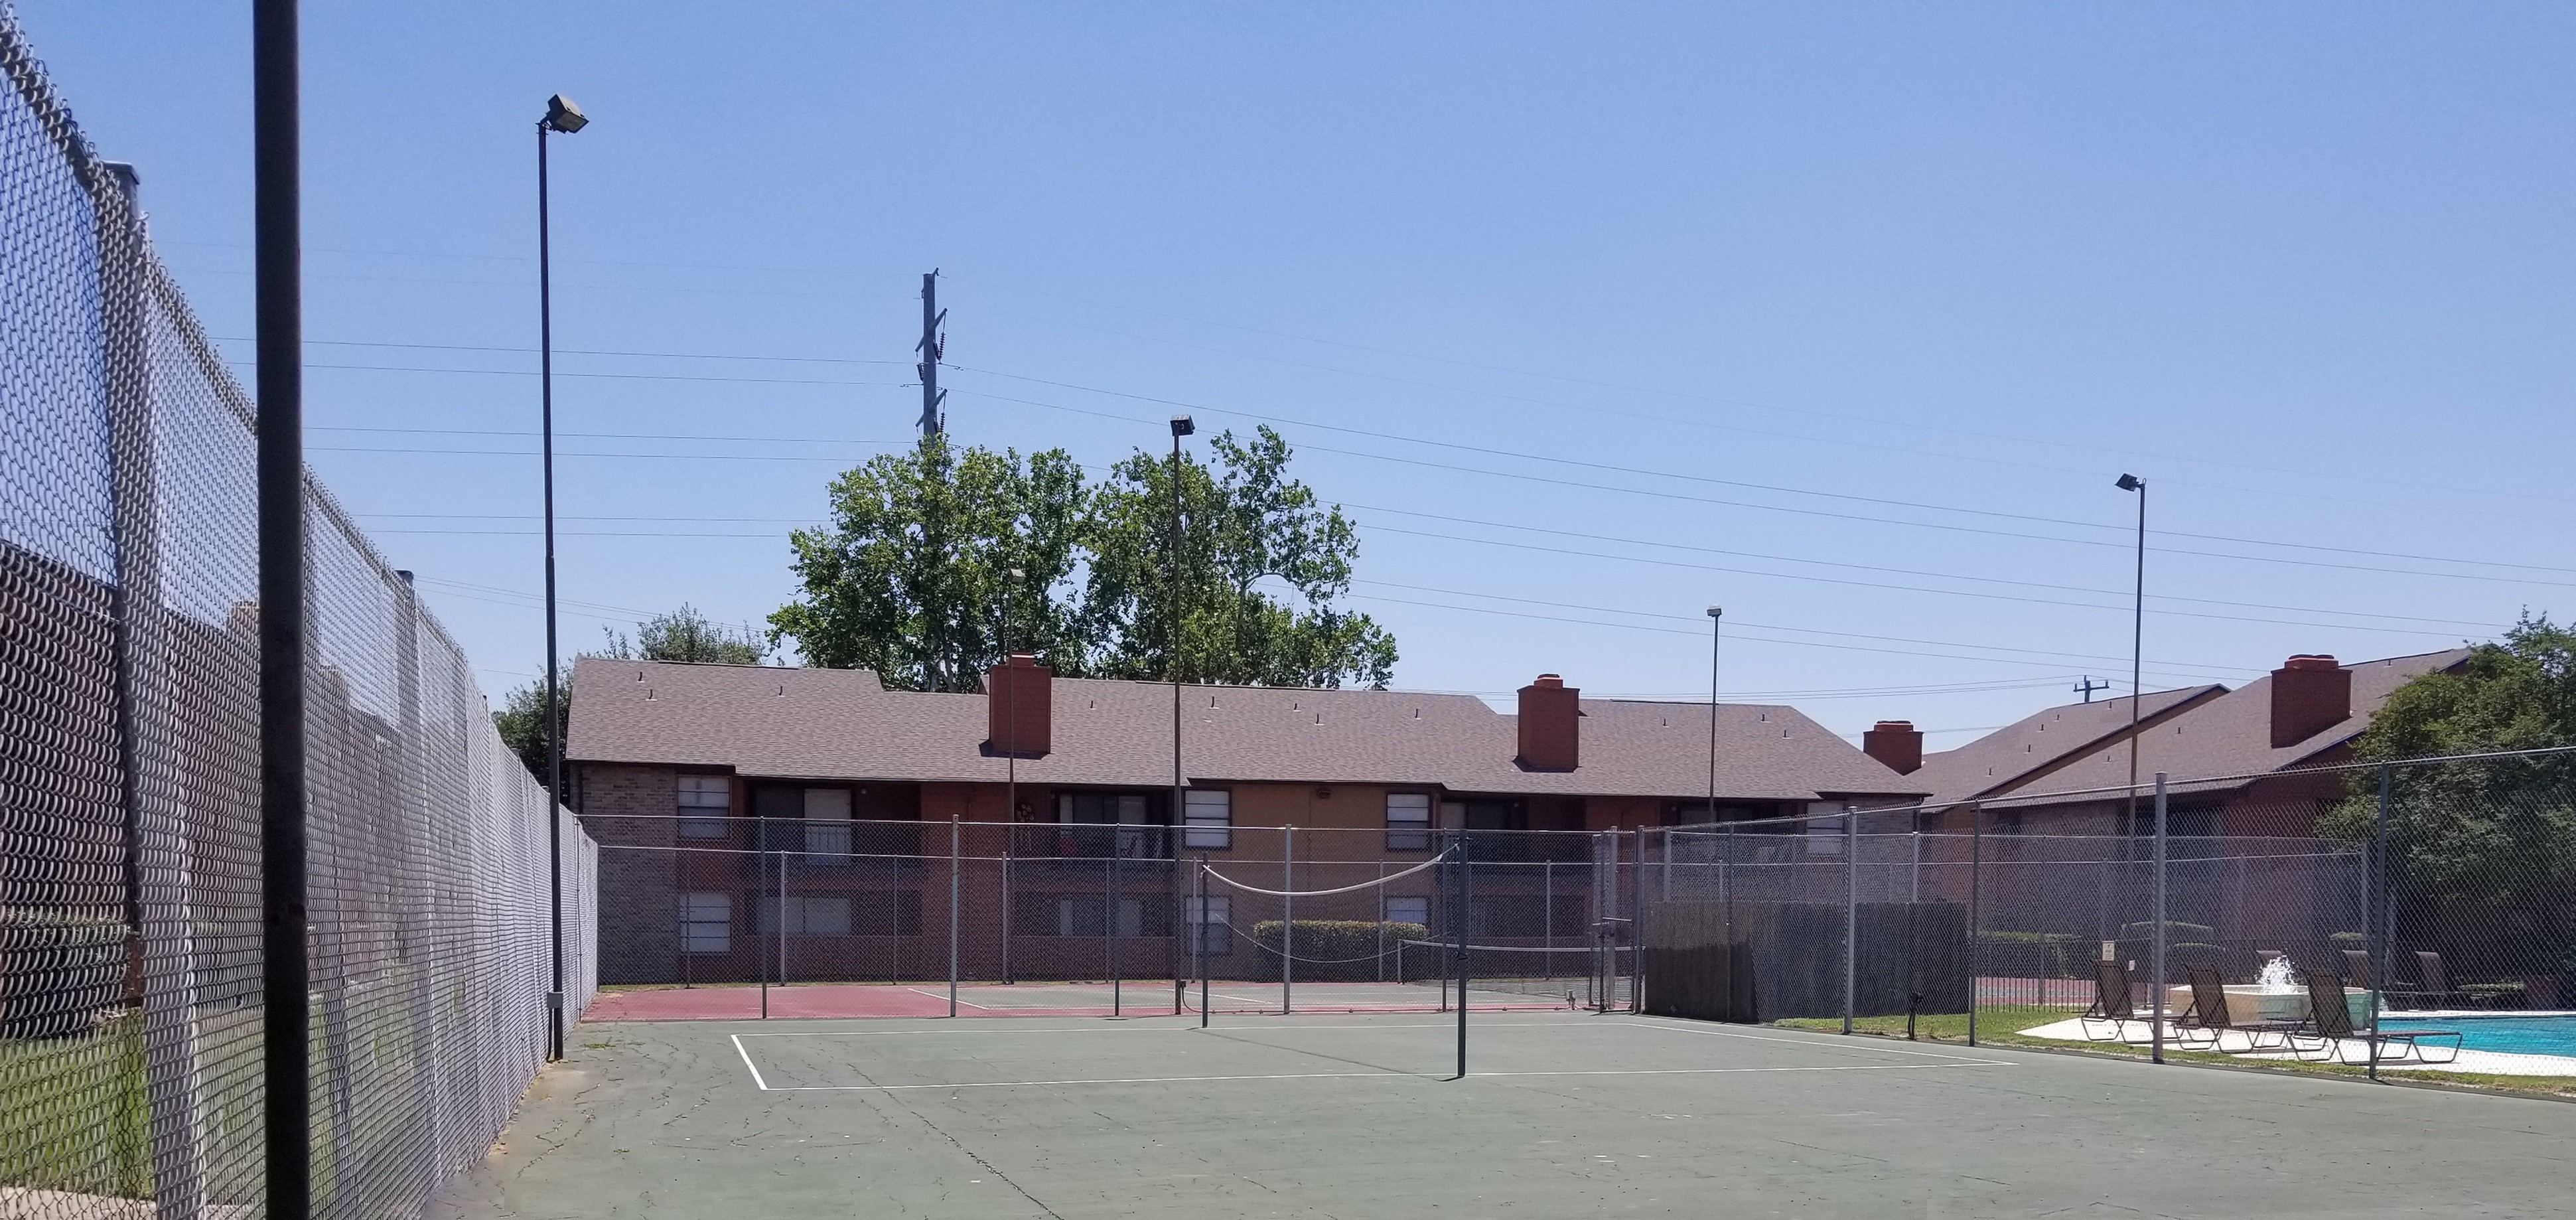 Iron Horse Valley Apartments image 12